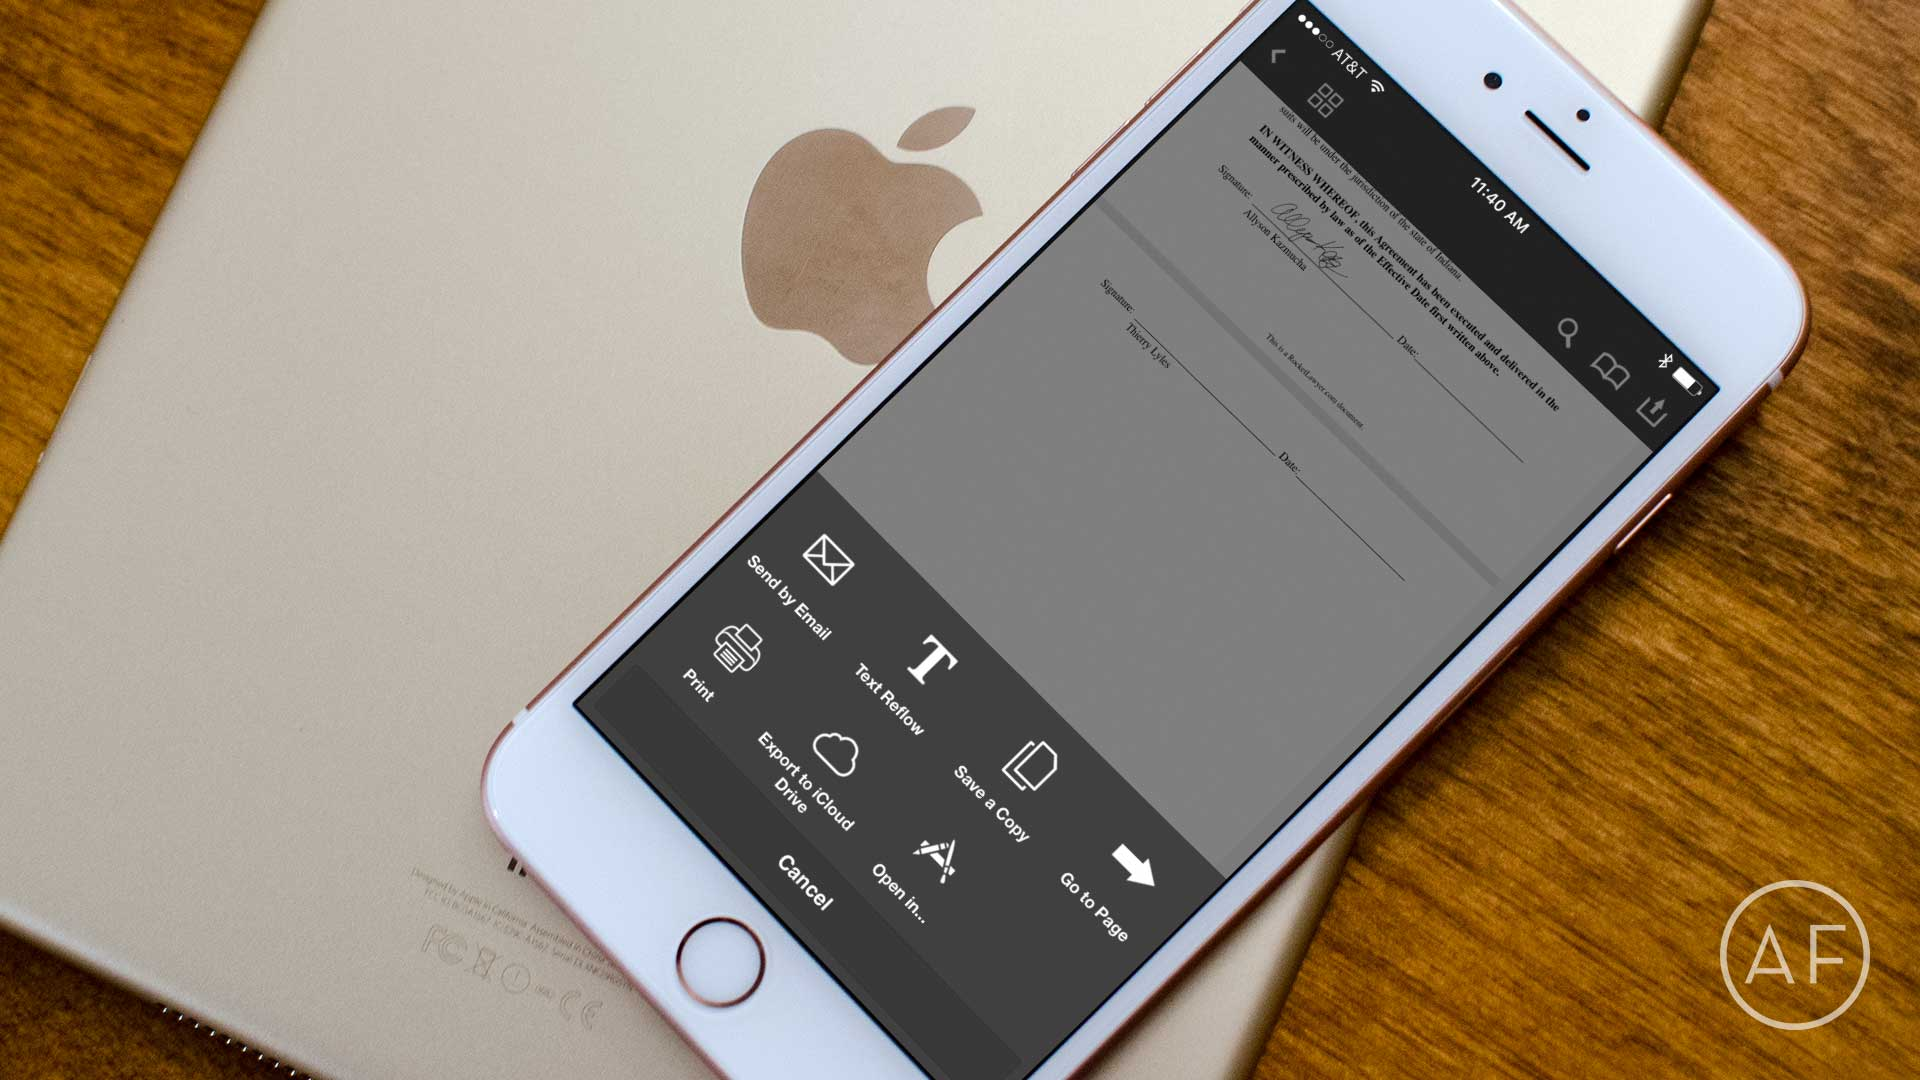 Want to go completely paperless? Here's how to better manage PDF documents on iPhone and iPad!